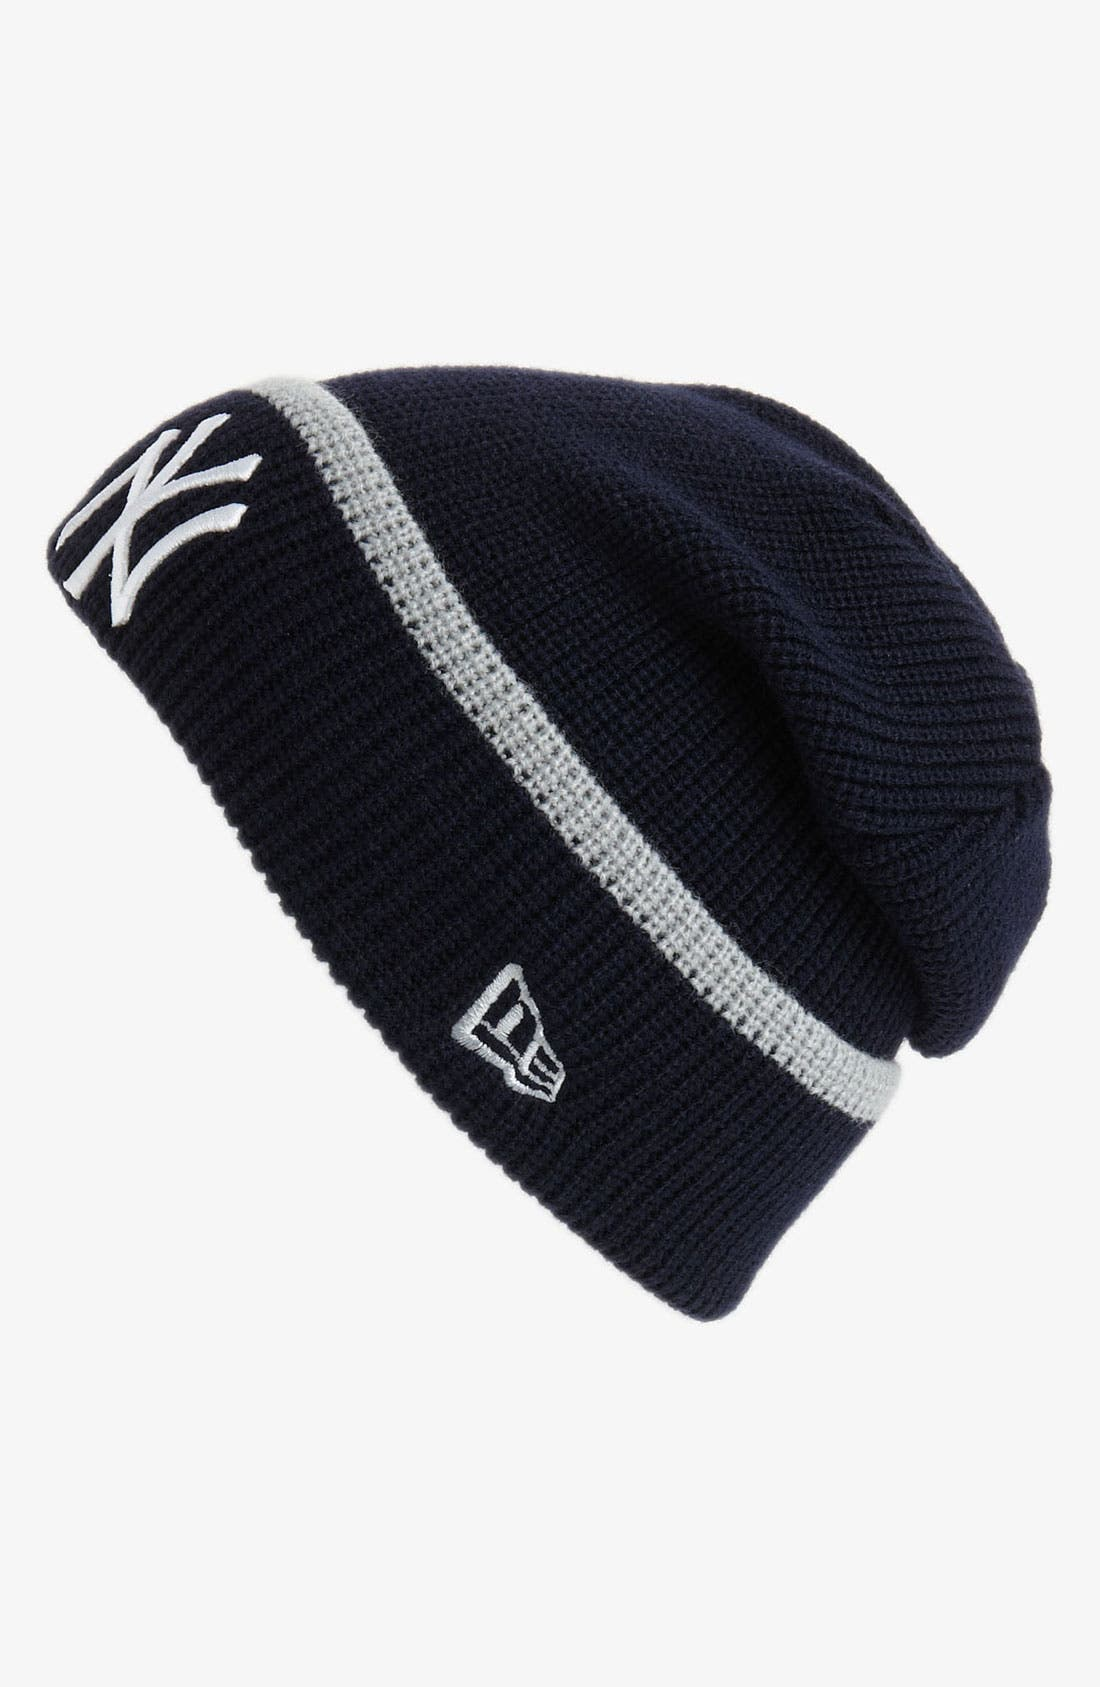 Main Image - New Era Cap 'New York Yankees' Pop-Cuff Knit Beanie